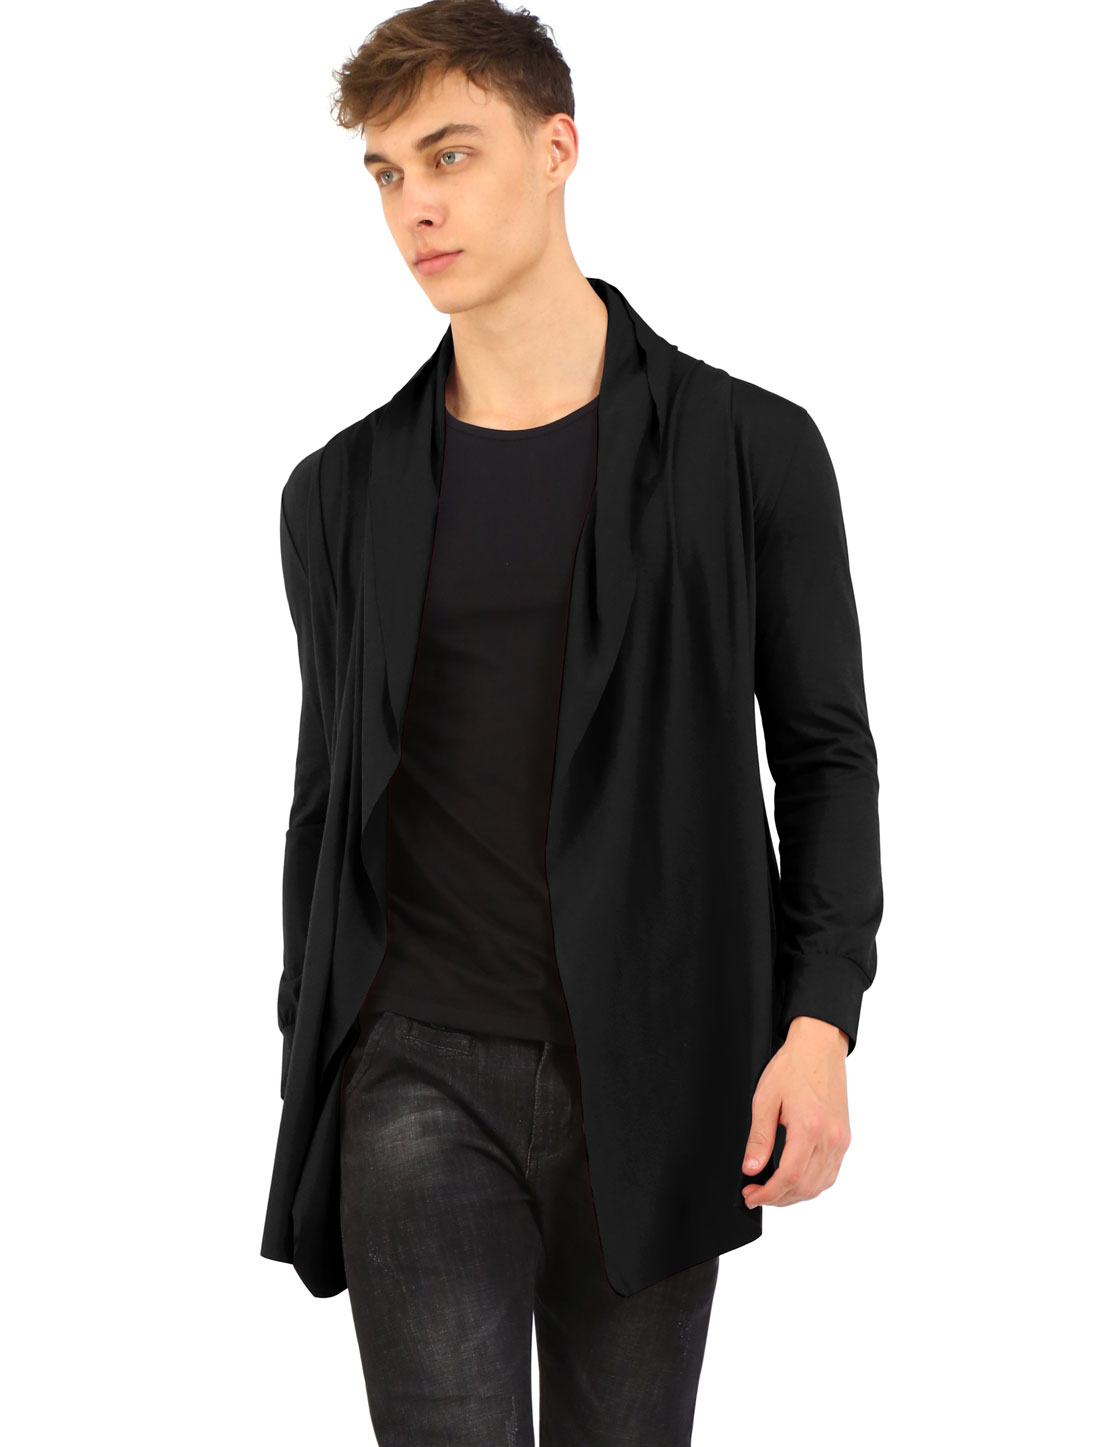 Men Shawl Collar Front Opening Side Pockets Asymmetric Hem Long Cardigan Black M